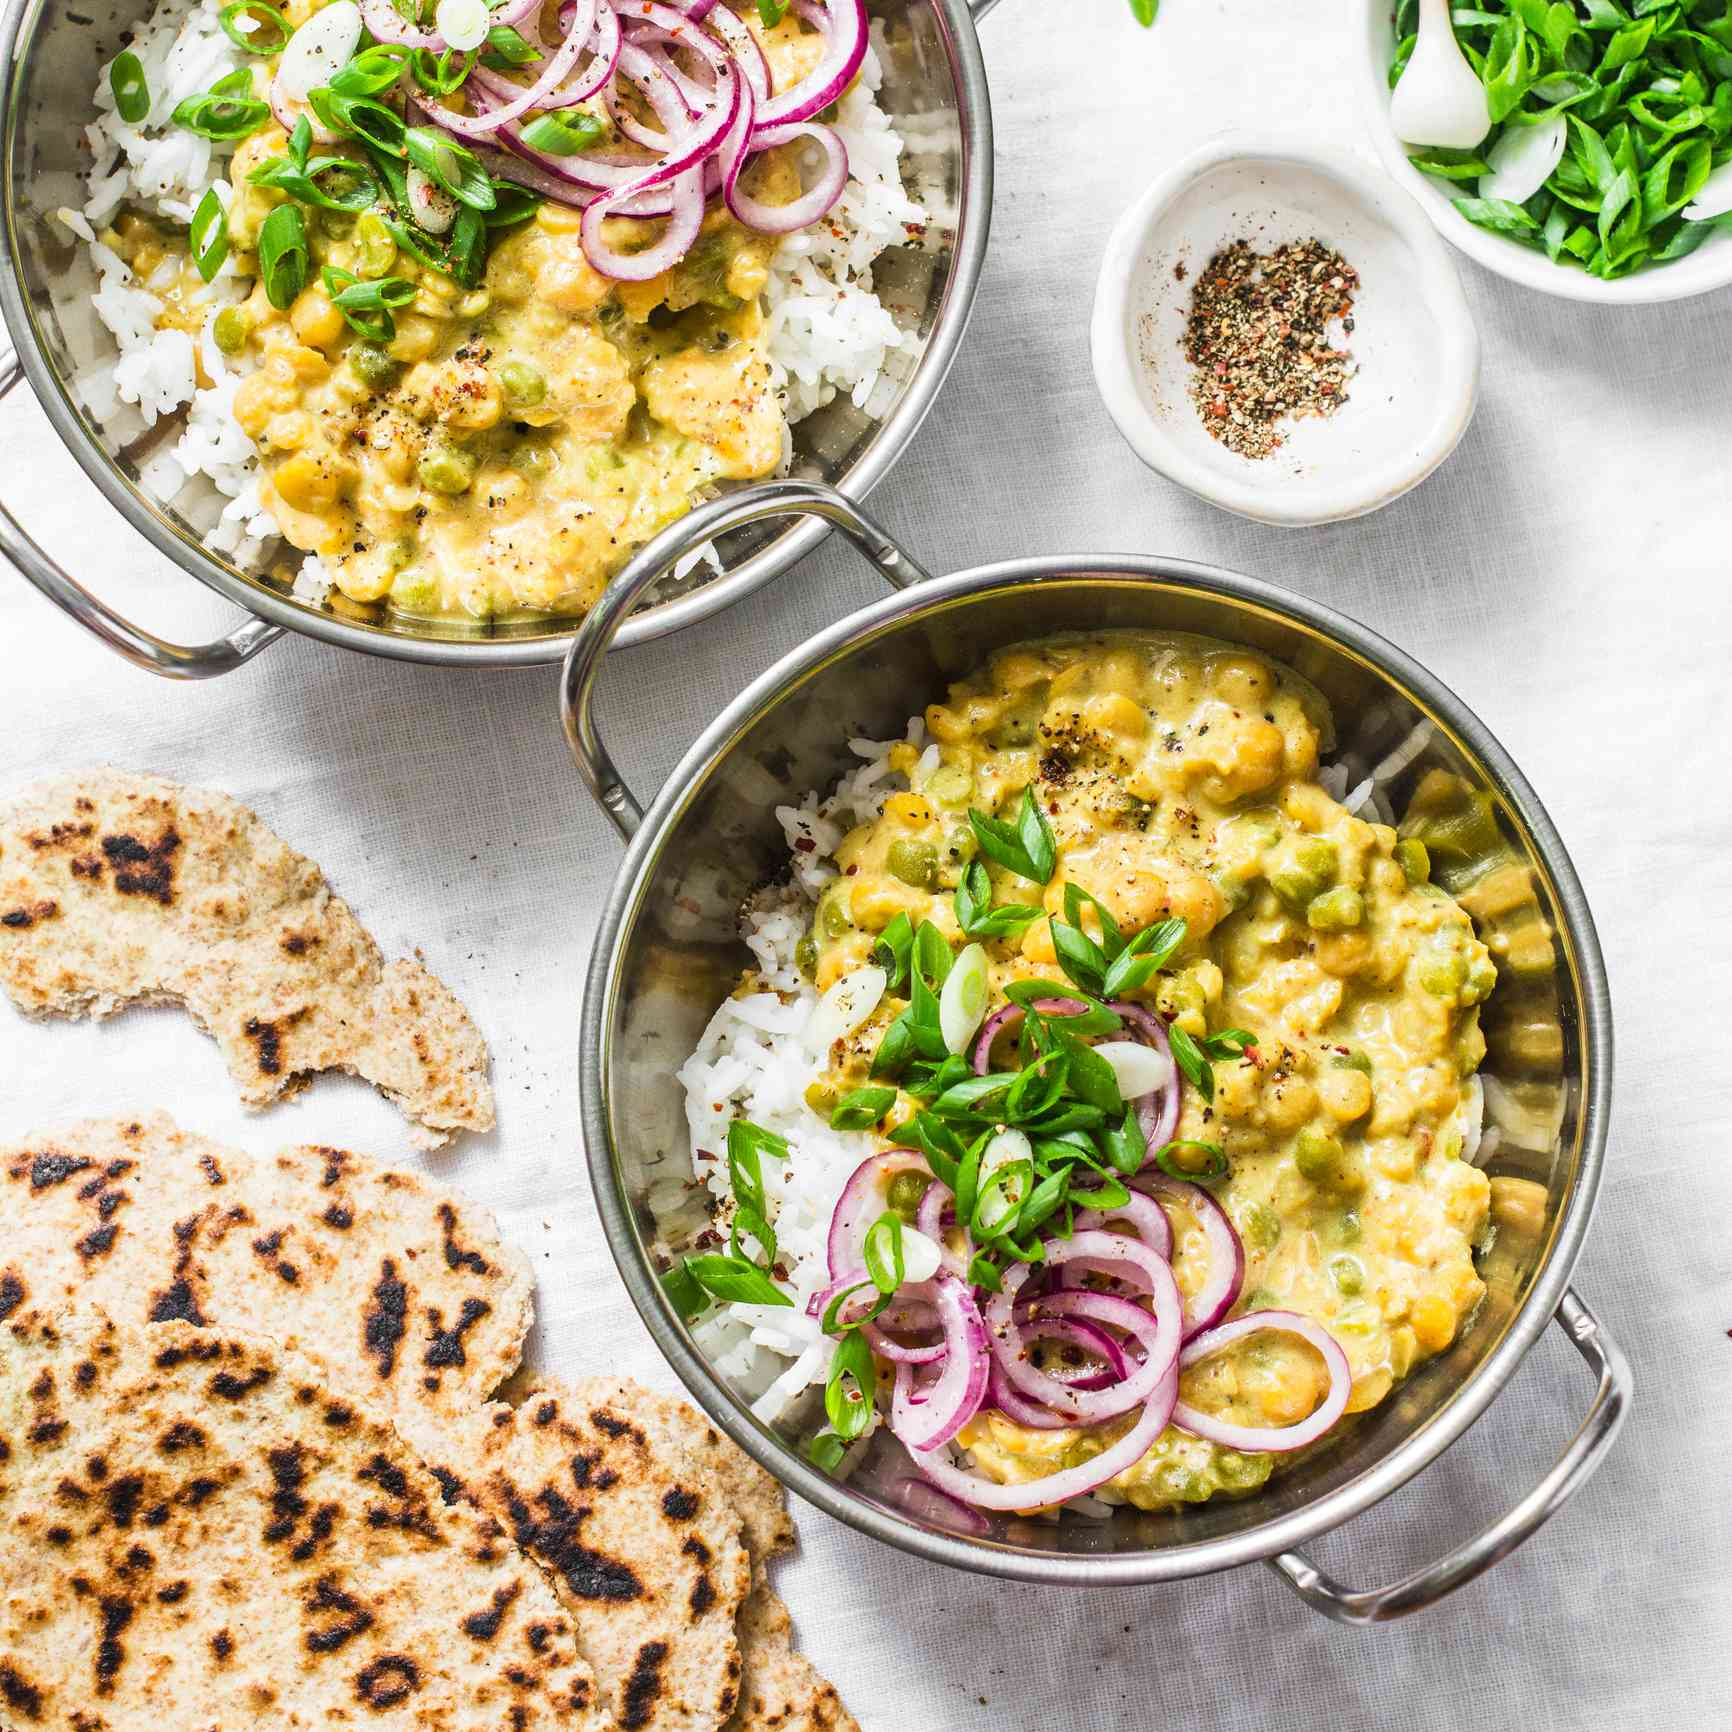 Indian dhal with jasmine rice, marinated red onion, scallion and whole grain flatbread on light background, top view. Flat lay, vegetarian food concept